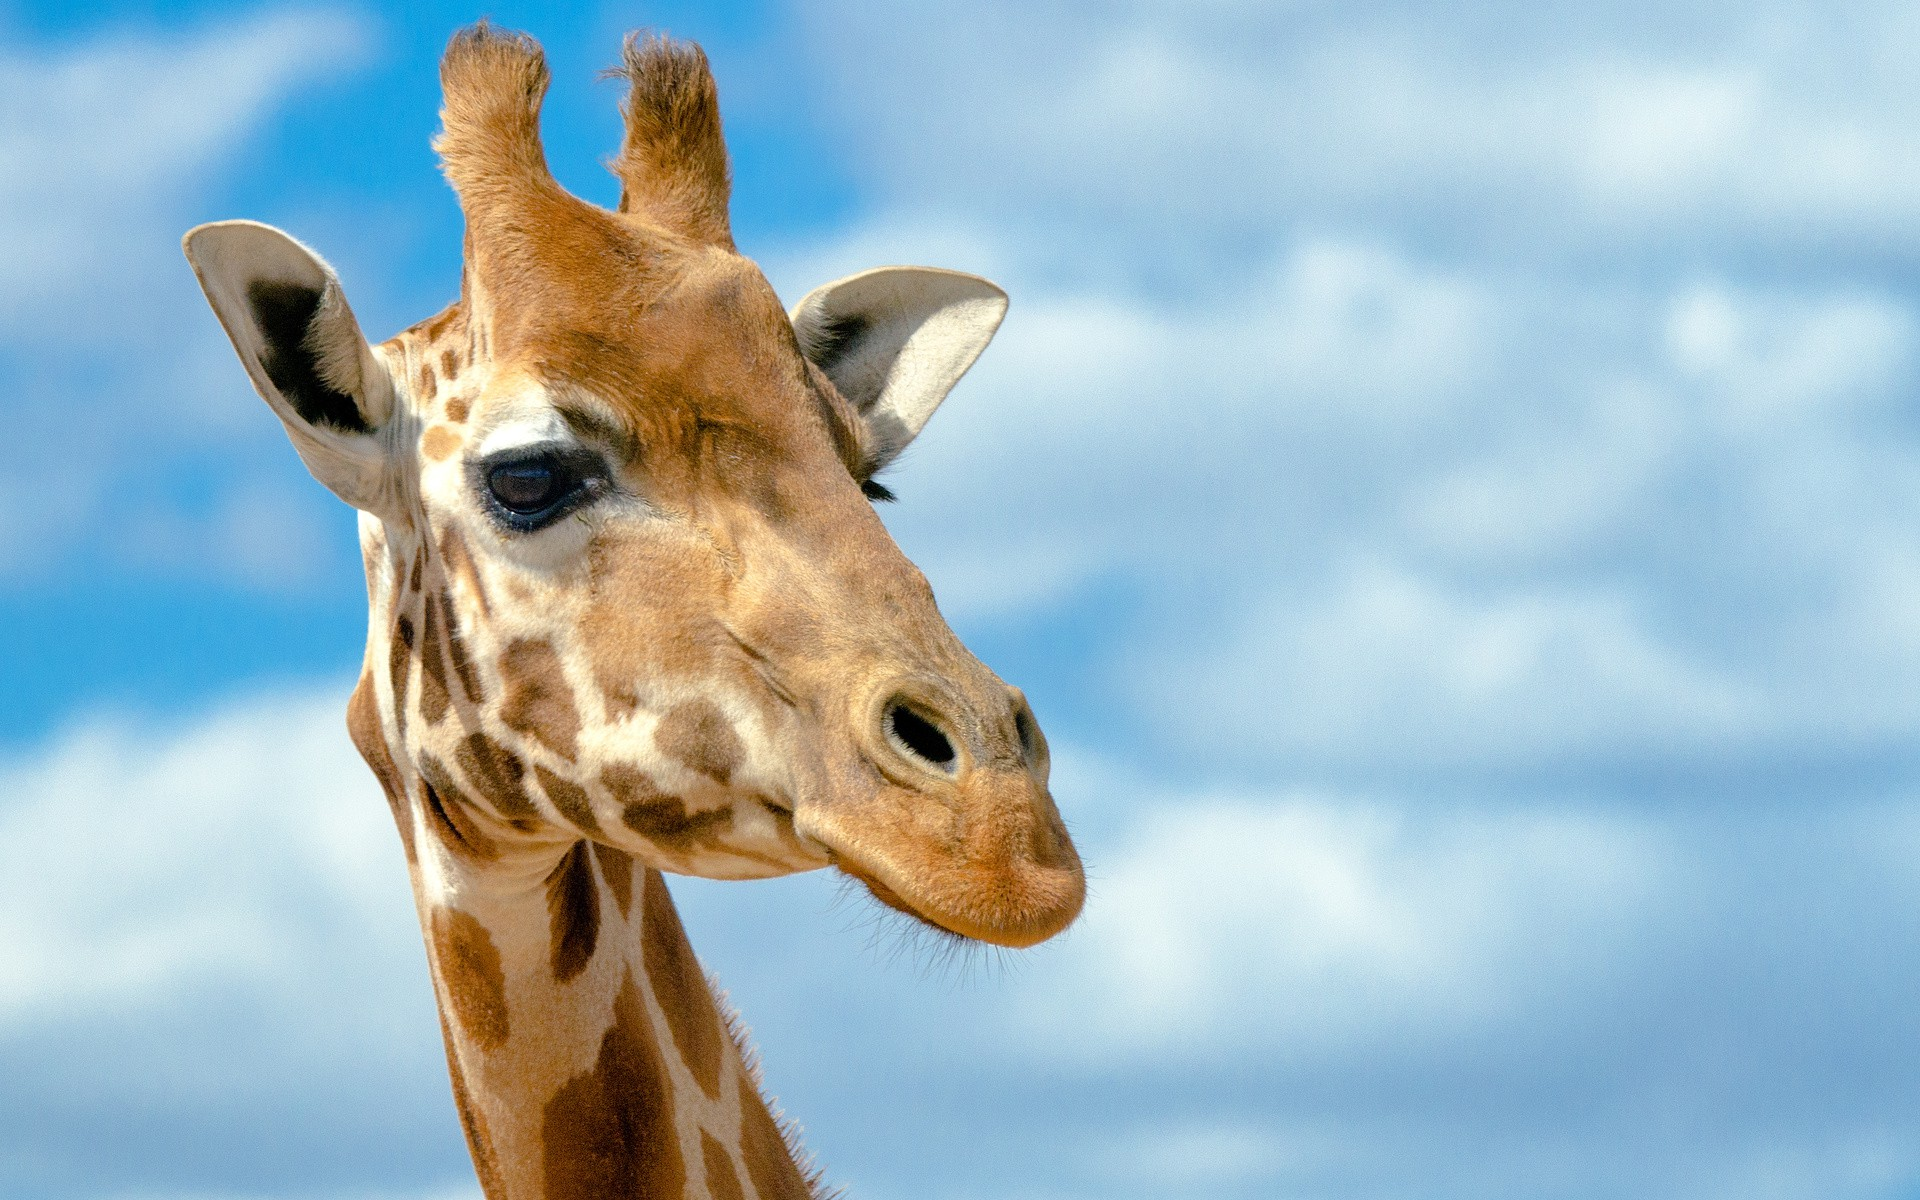 beautiful colse up image of giraffe free download best desktop